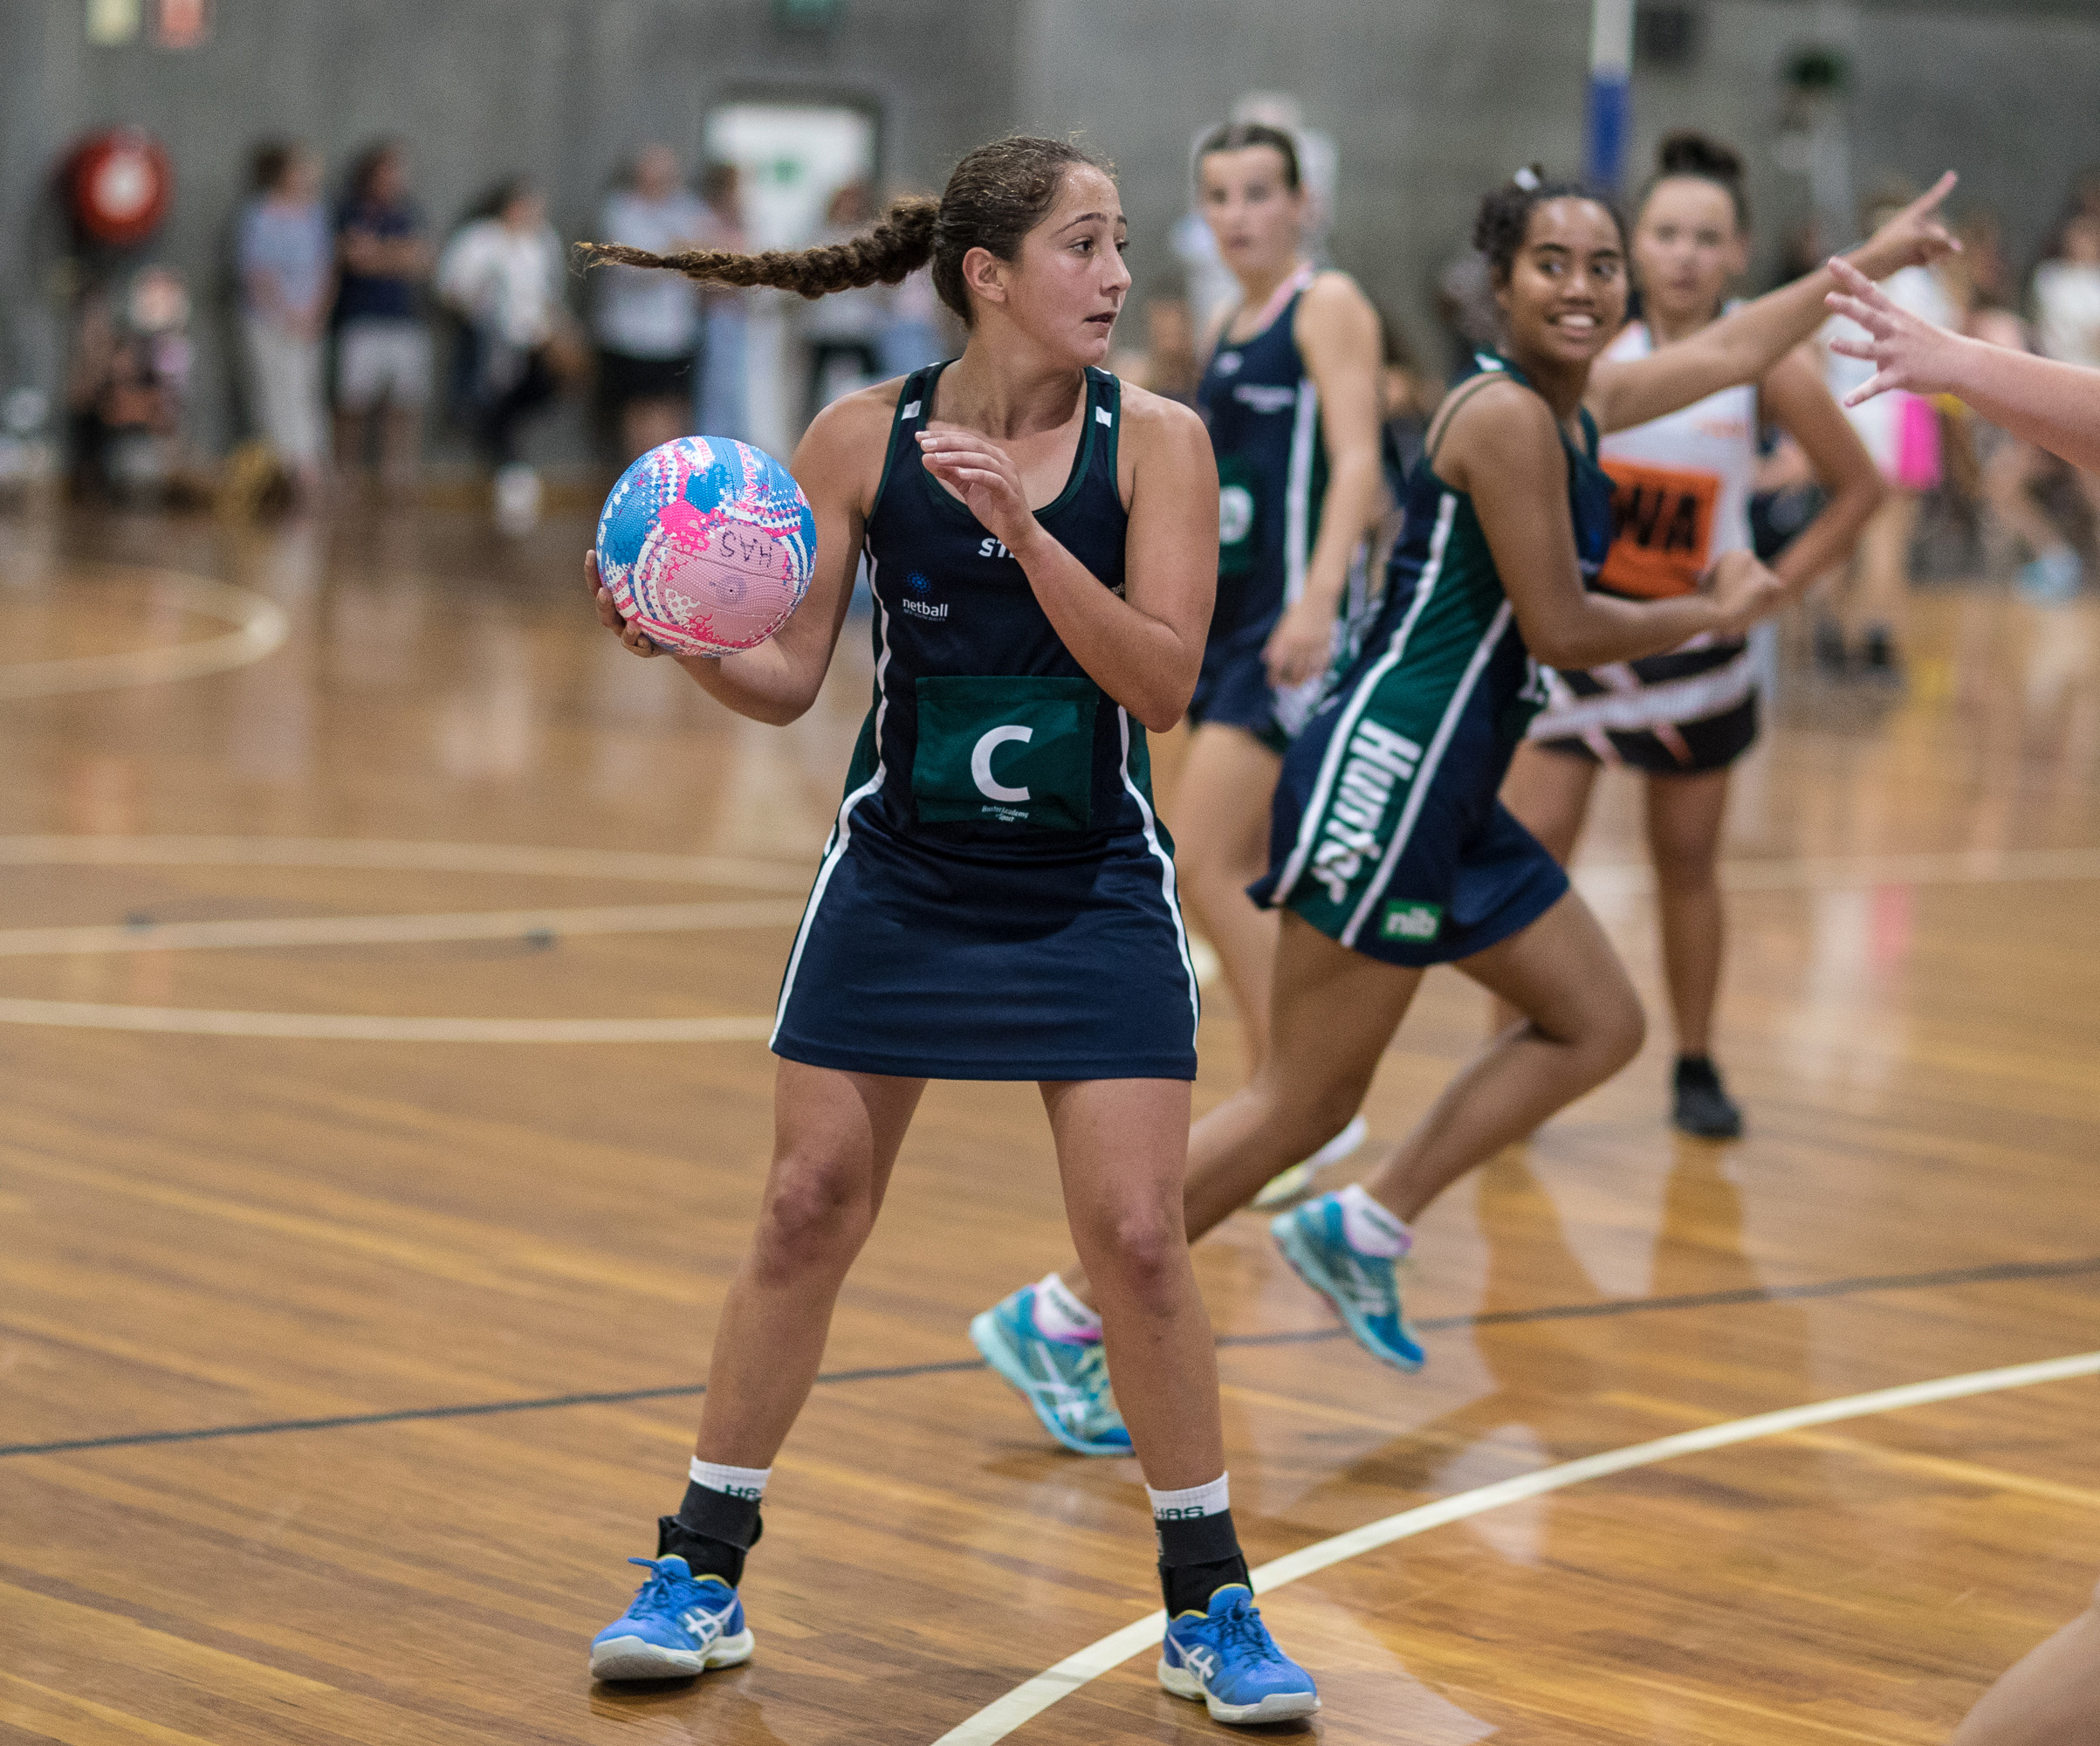 For more than 25 years, Greater Bank have funded talented regional athletes within the Hunter Academy of Sport's (HAS) Netball program, helping them gain training and advice of a world-class standard without moving too far from home.